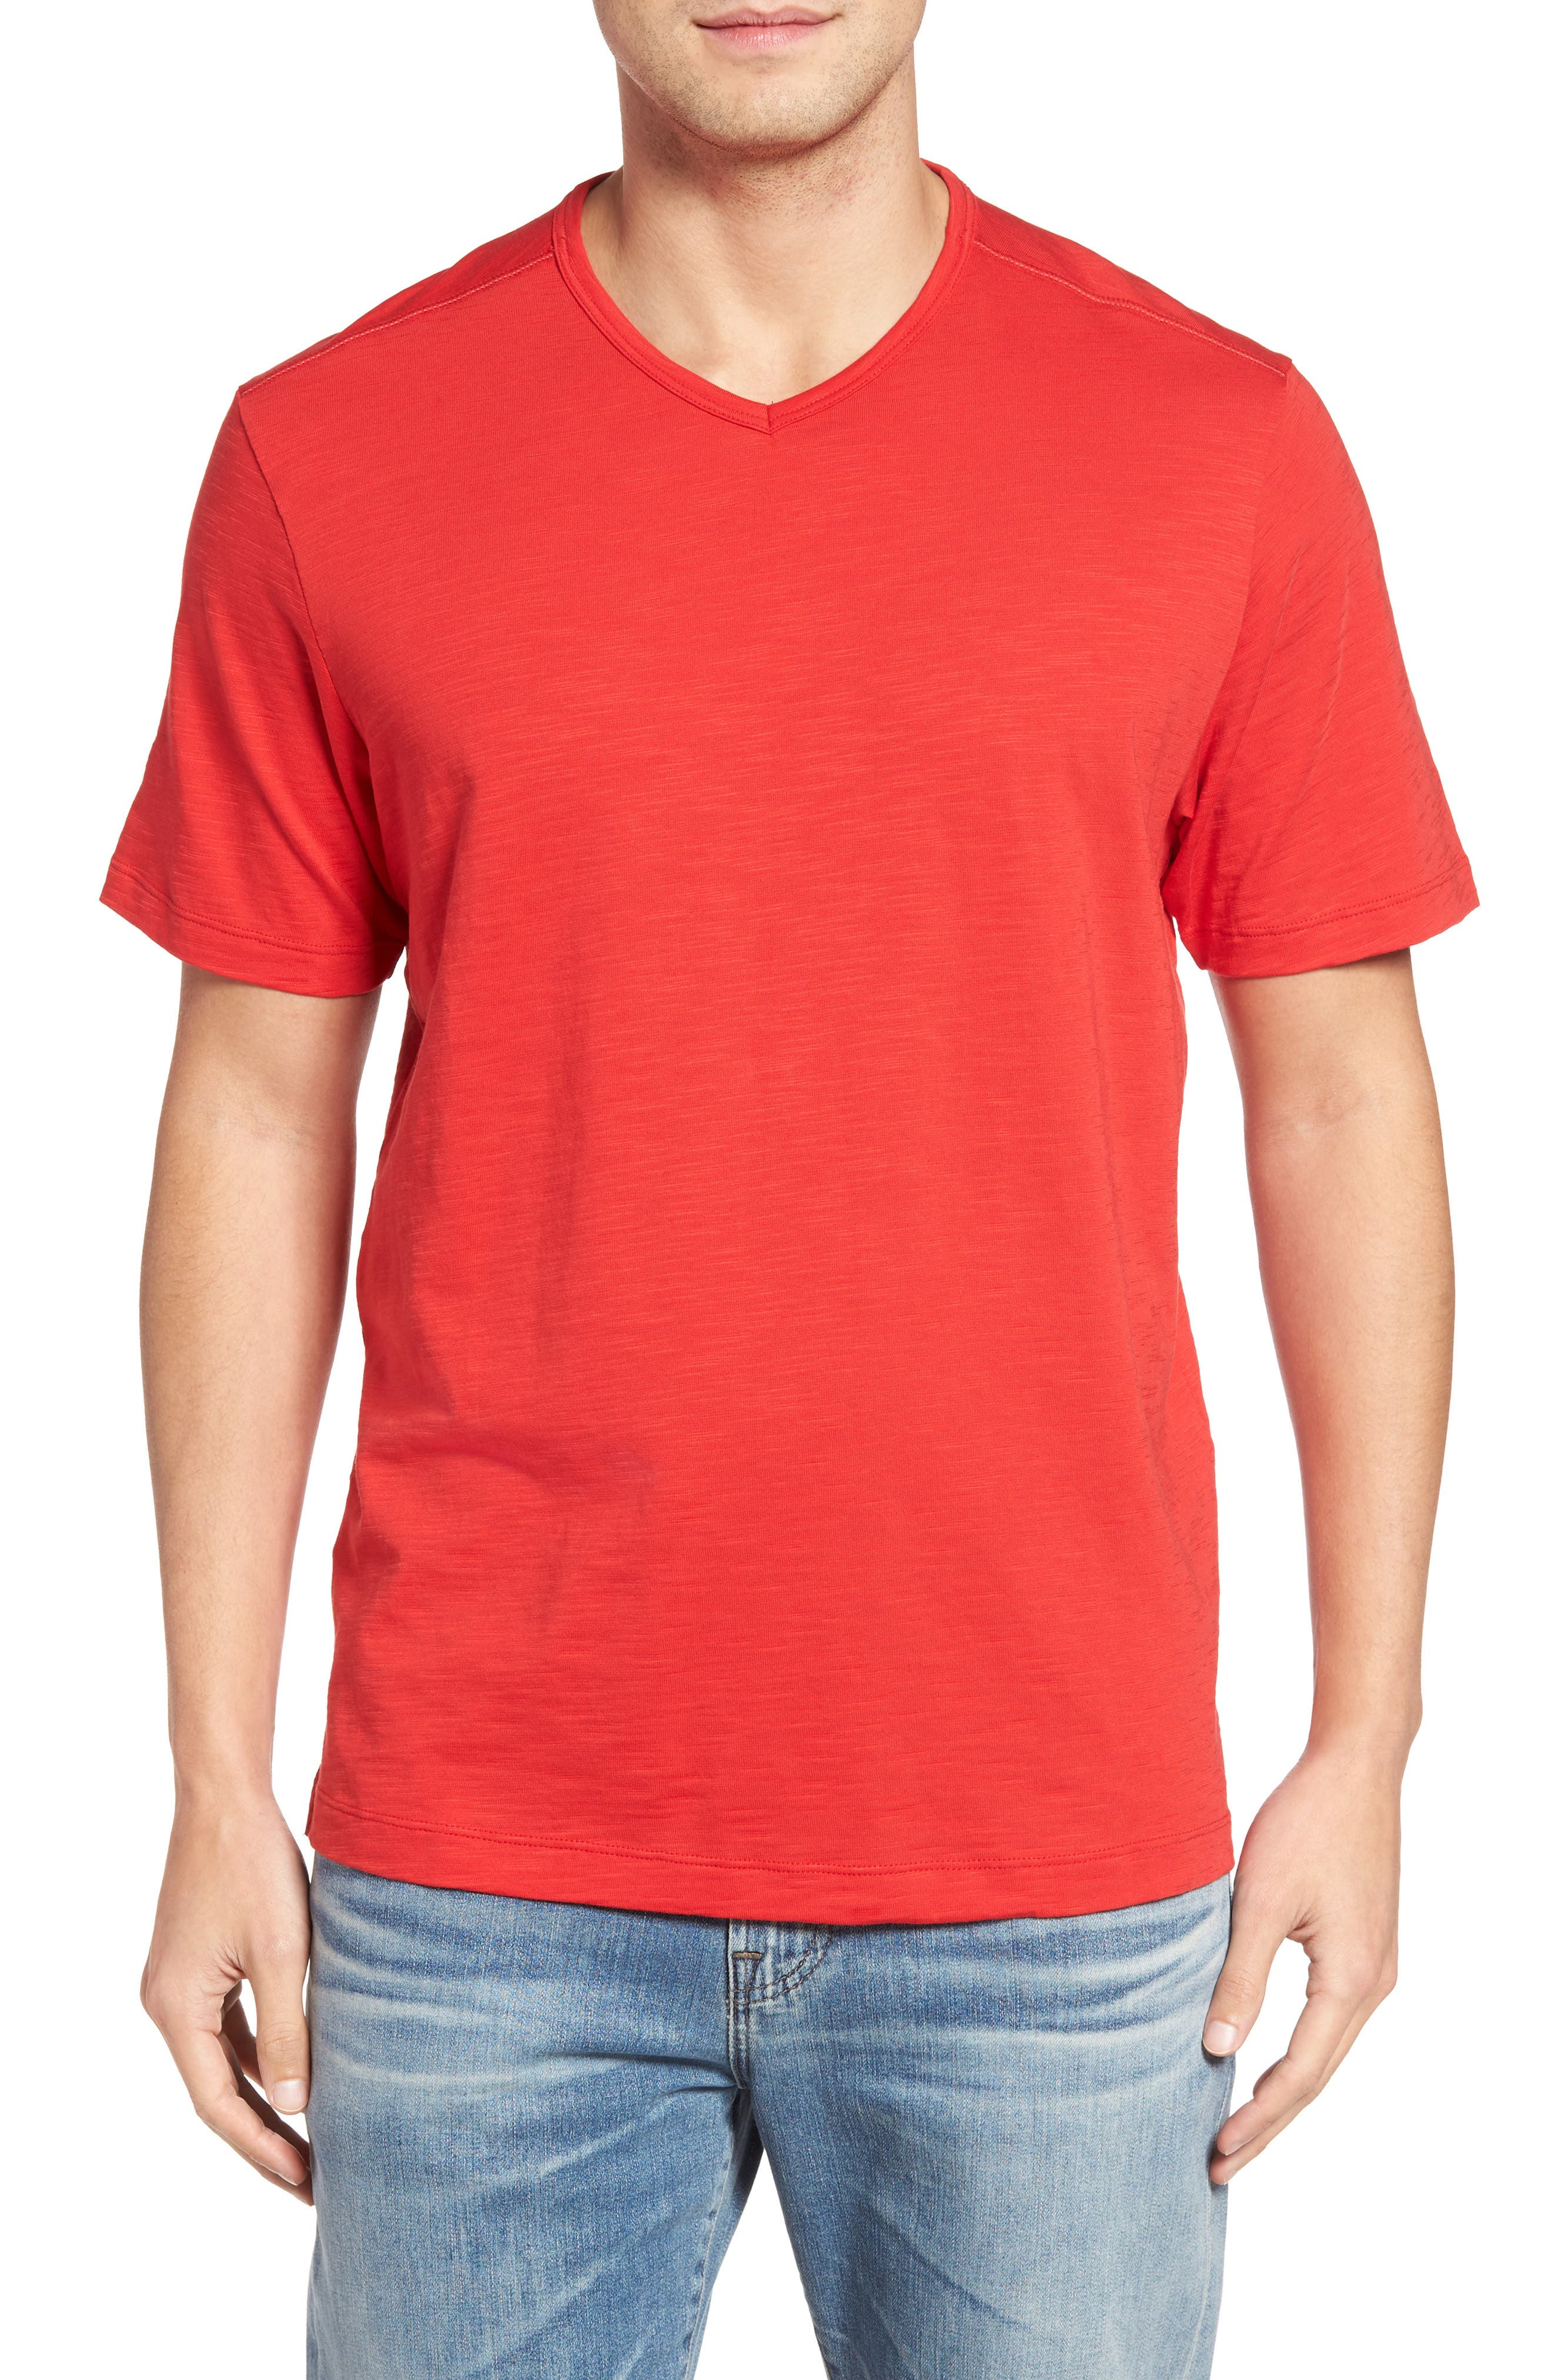 Tommy Bahama Portside Player V-Neck T-Shirt (Big & Tall)